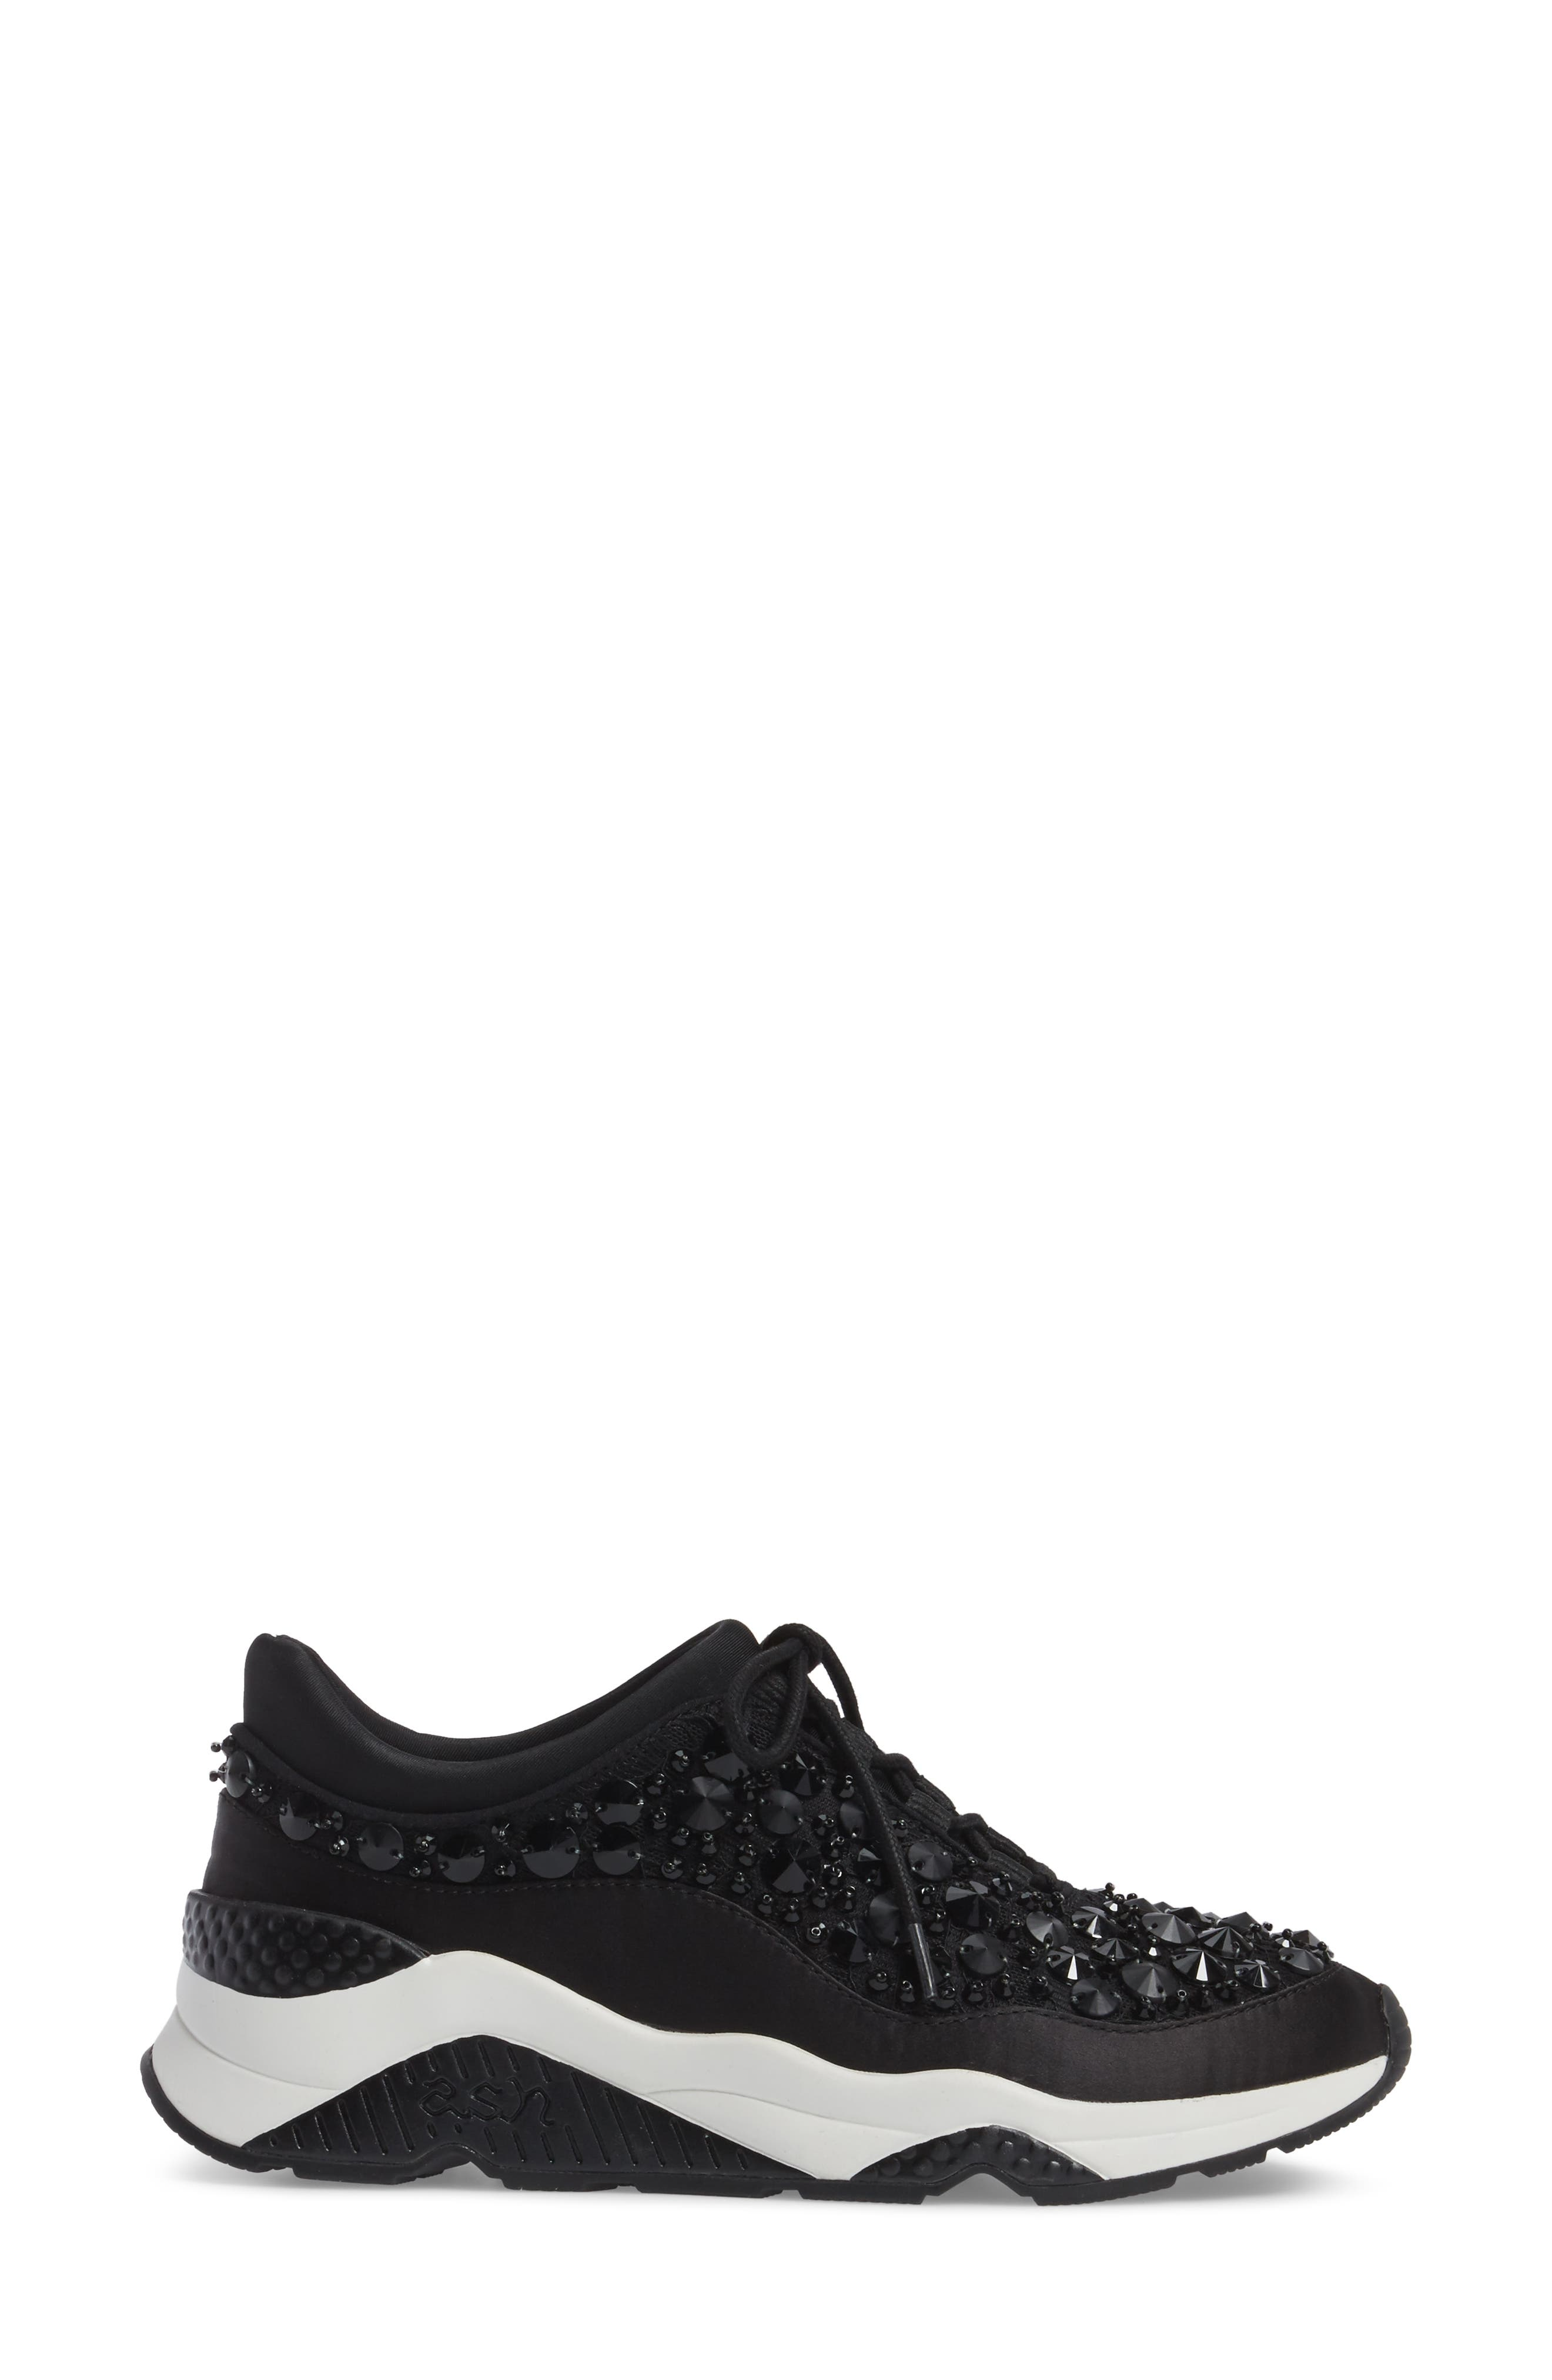 Muse Beads Sneaker,                             Alternate thumbnail 3, color,                             001